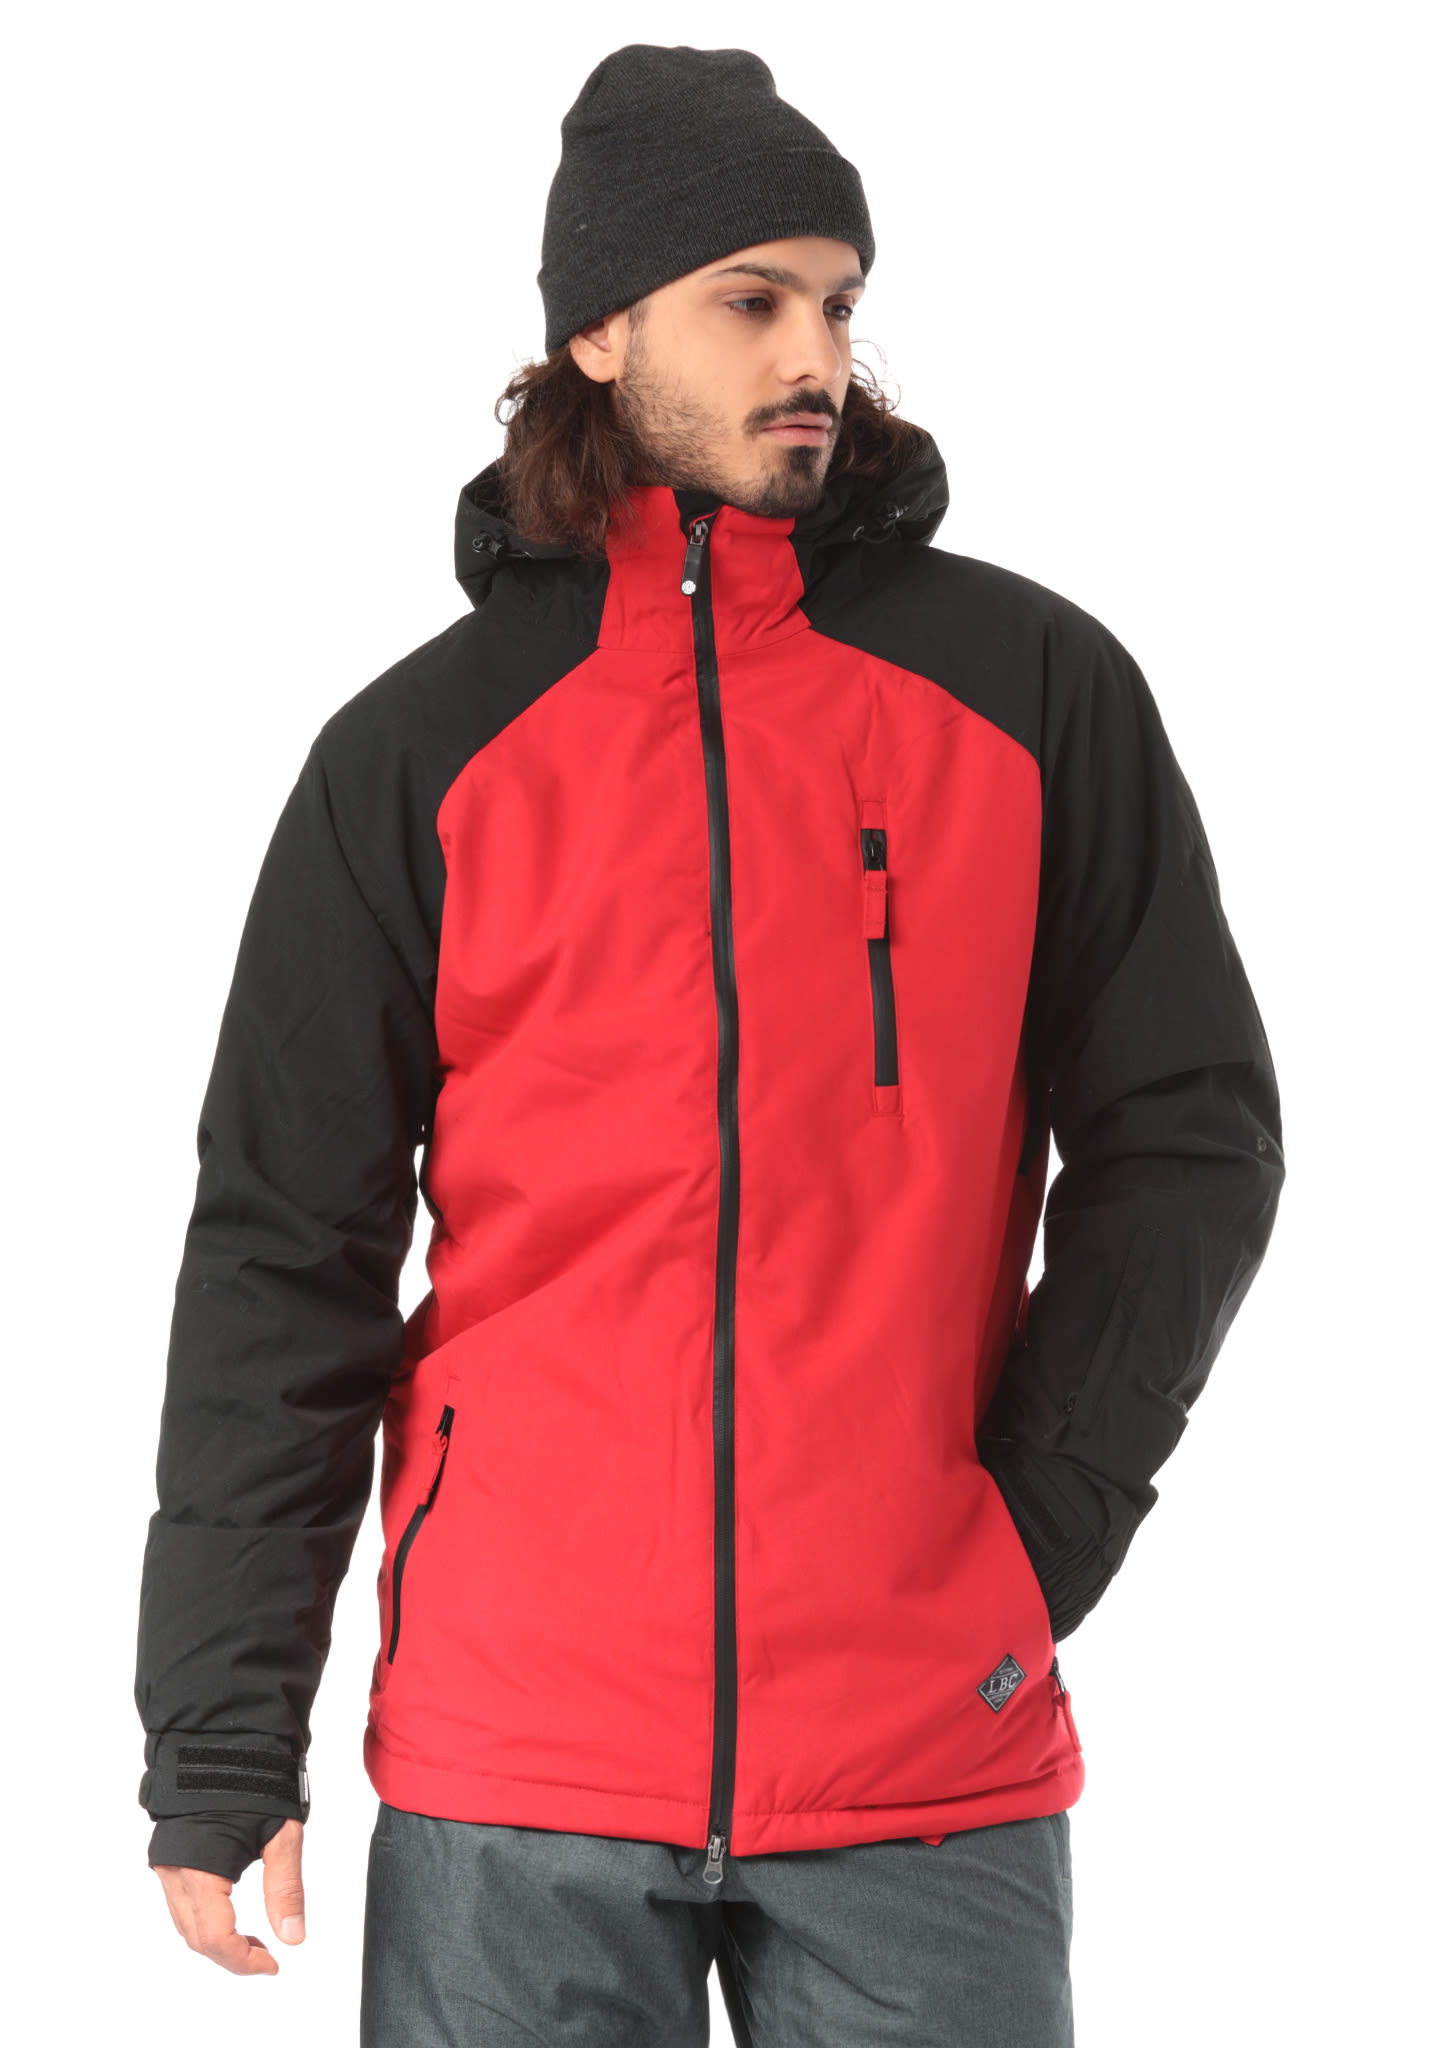 Light Slice - Snowboard Jacket for Men - Red - Planet Sports e48c119e06